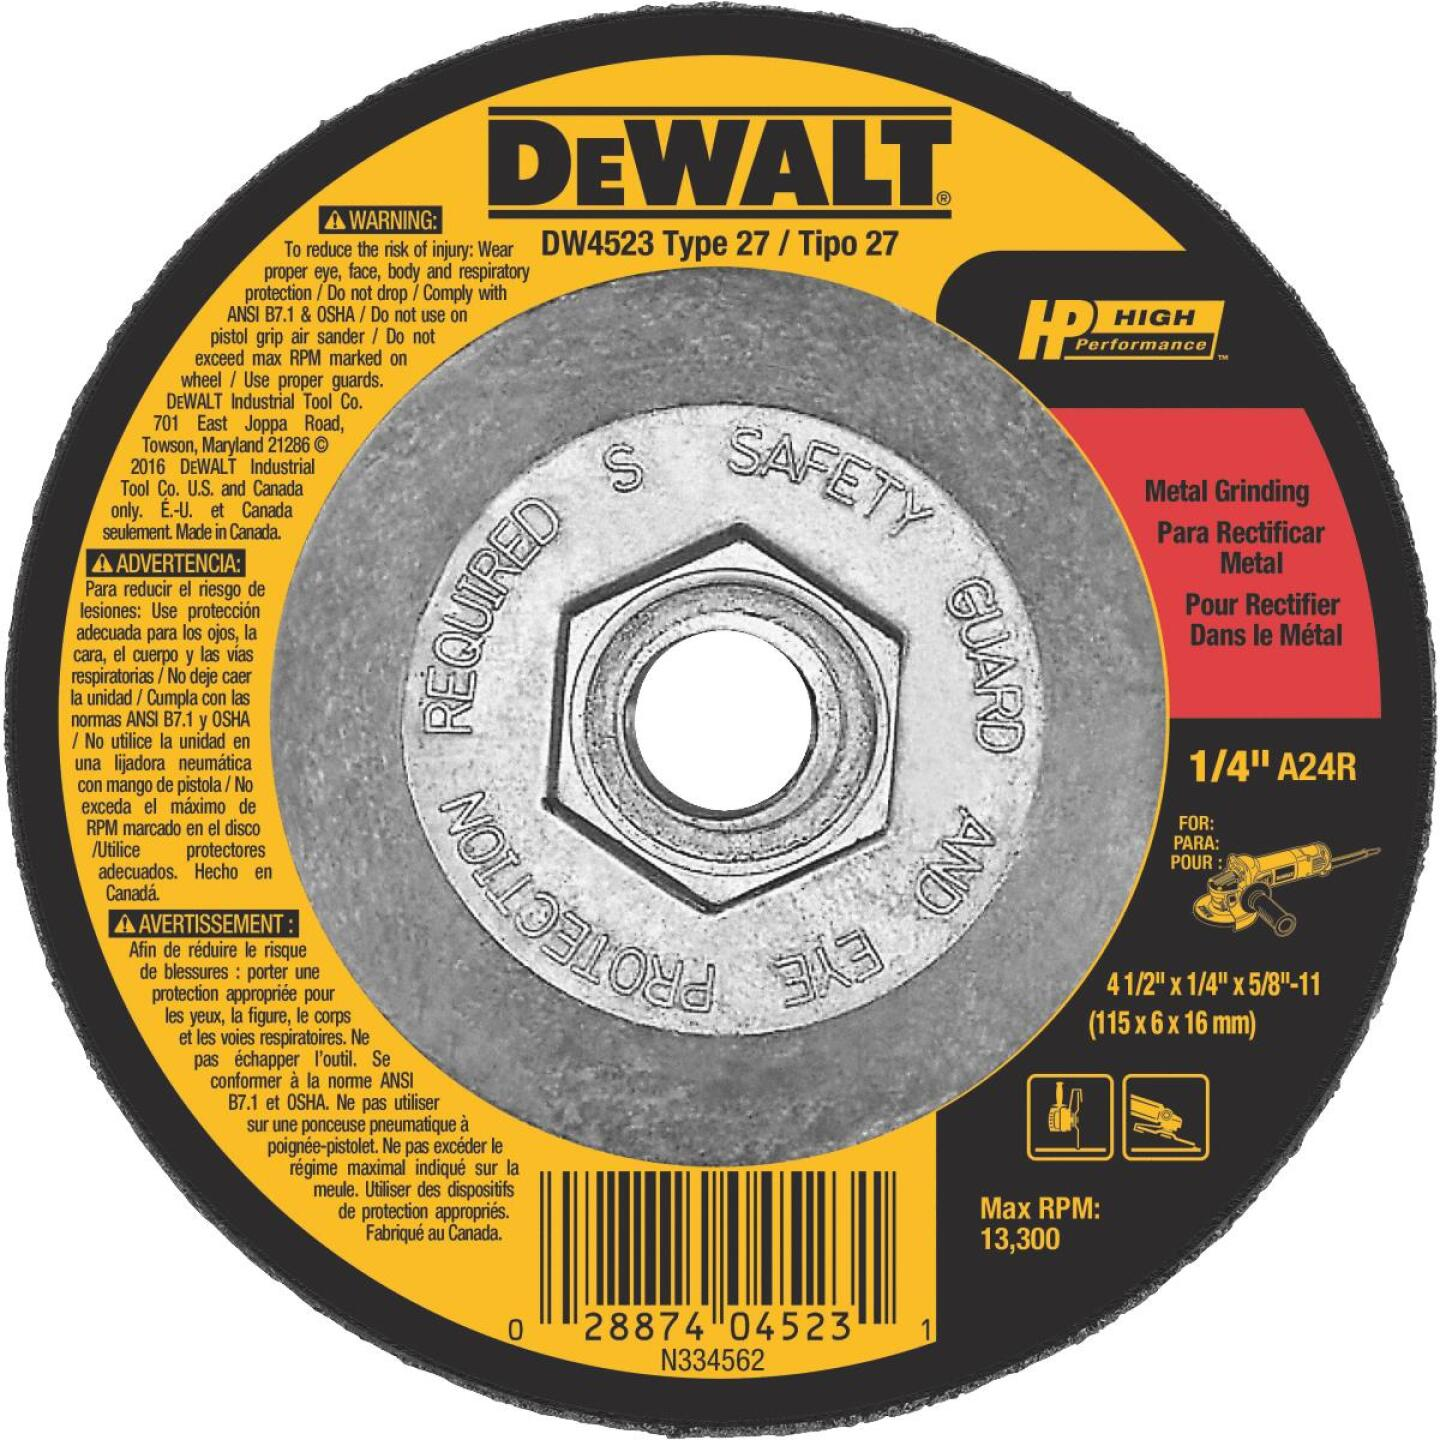 DeWalt HP Type 27 4-1 In. x 1/4 In. x 5/8 In.-11 Metal Grinding Cut-Off Wheel Image 1